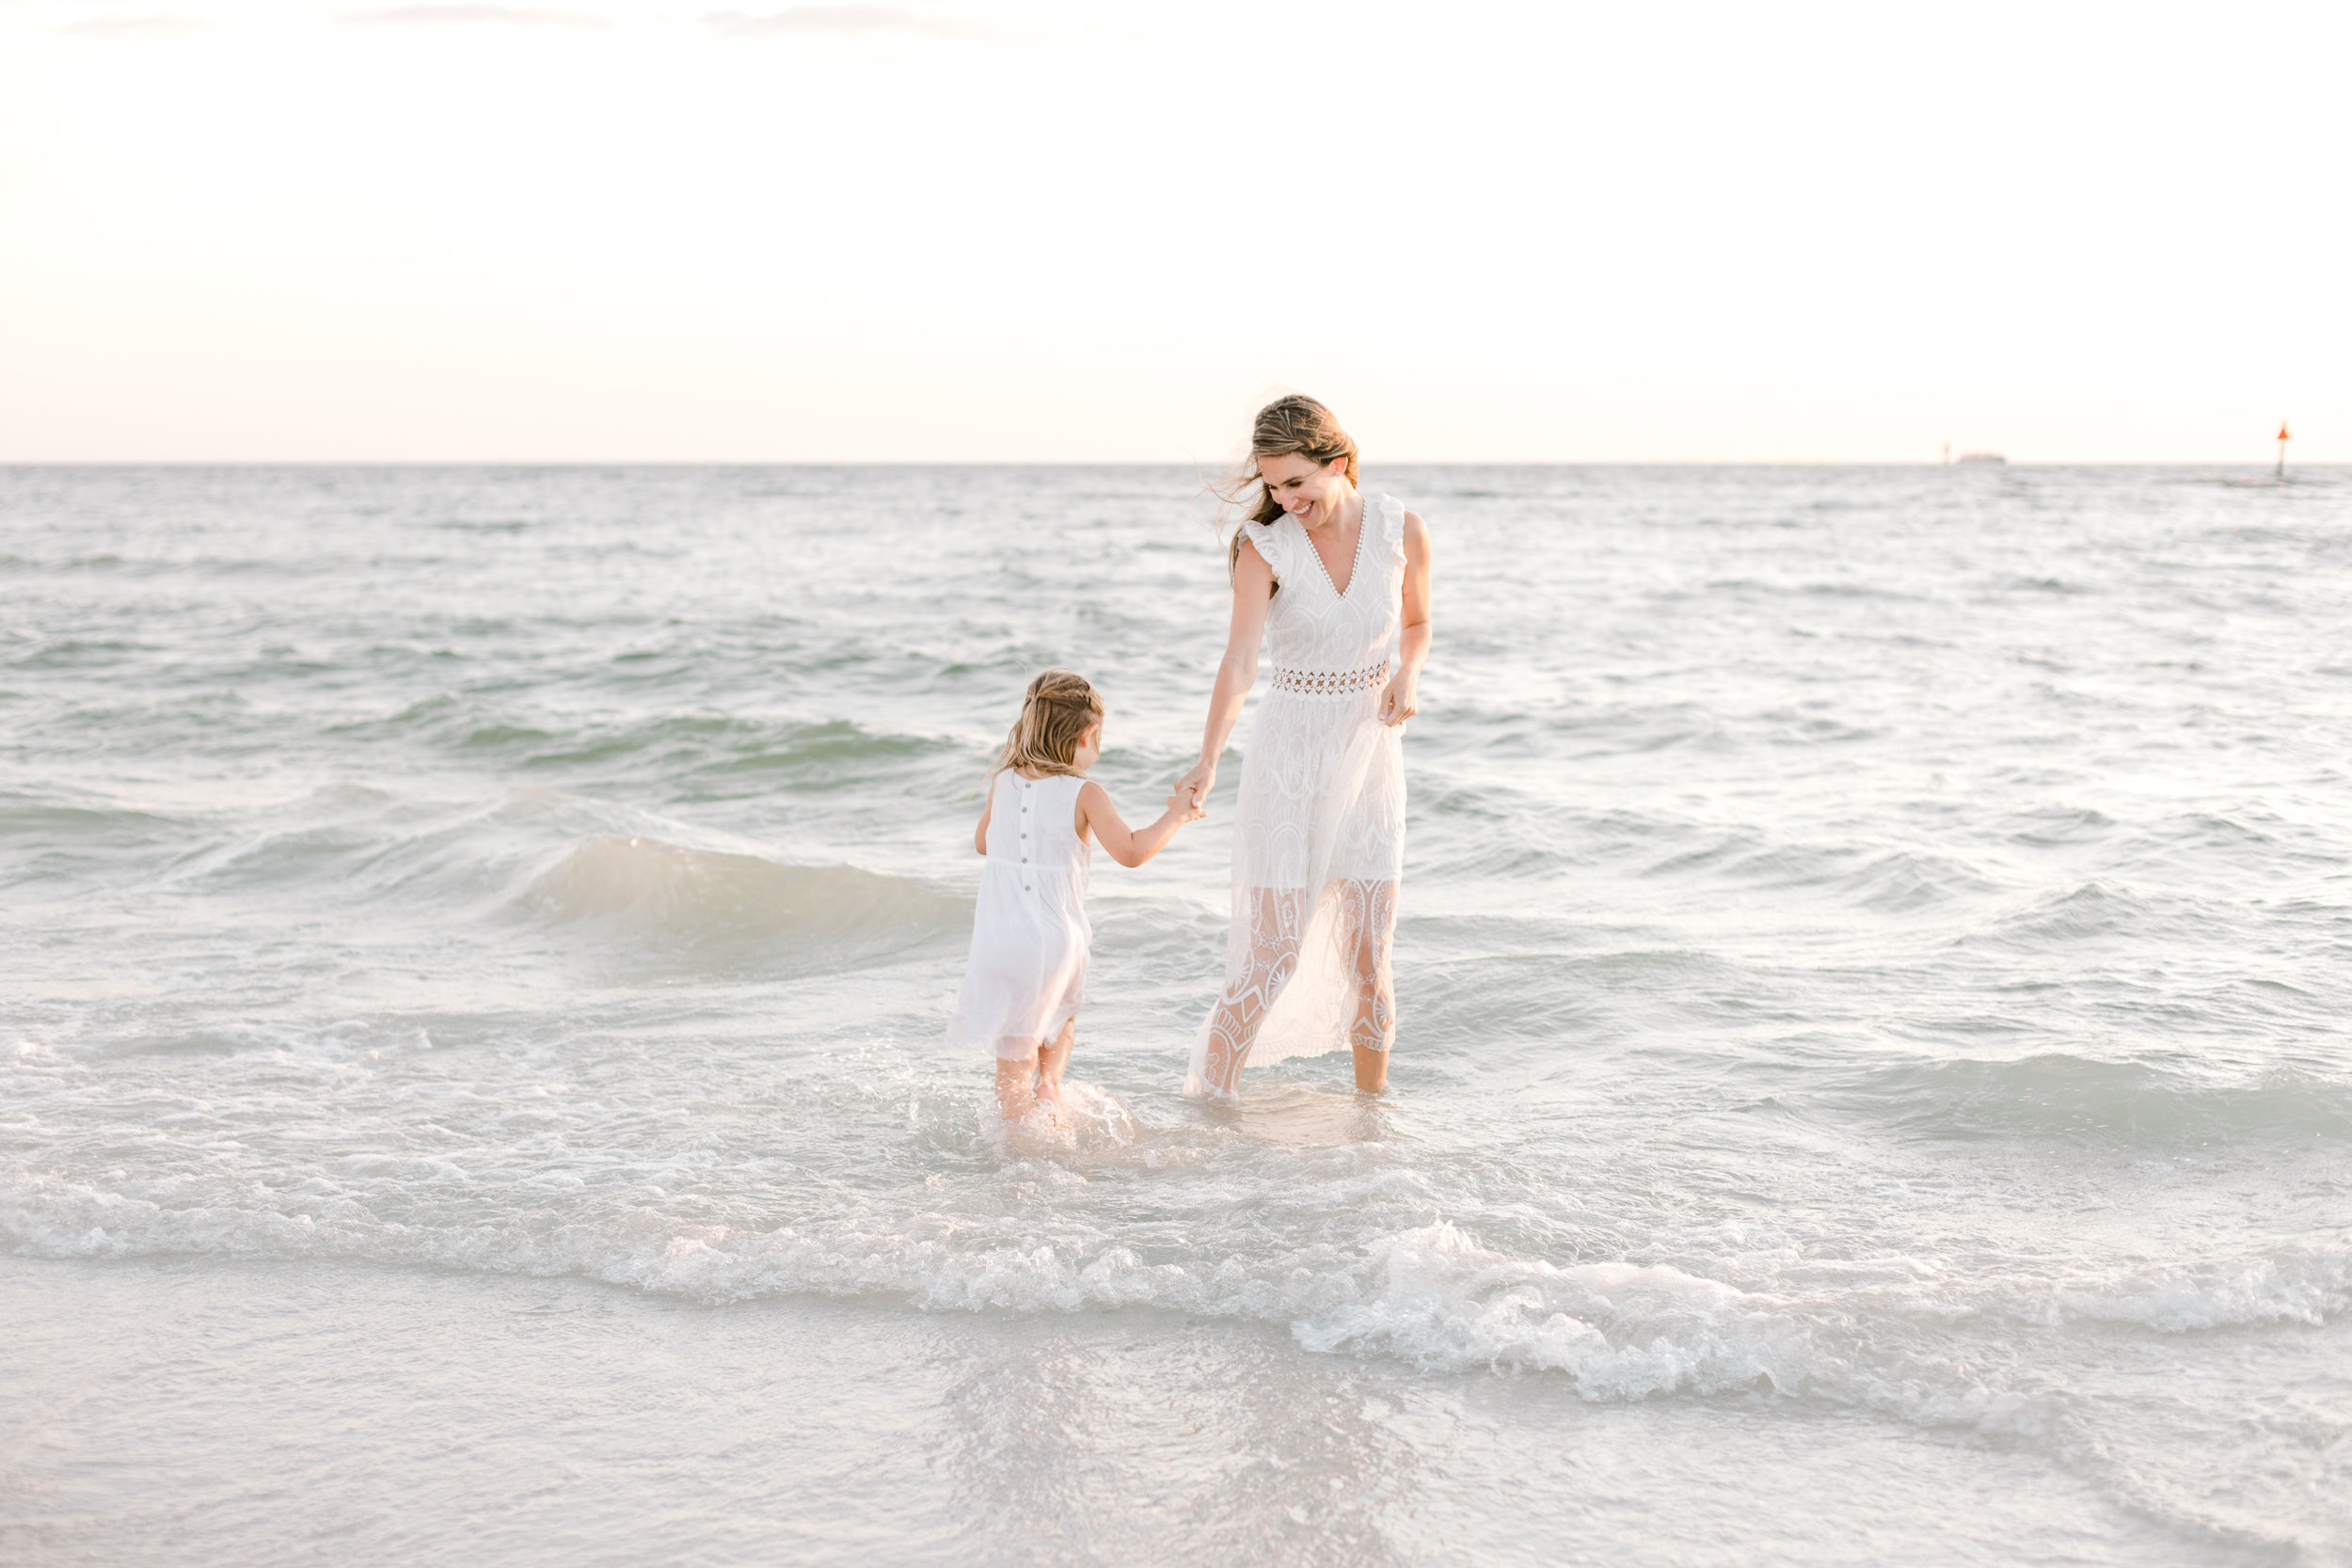 florida-marco-island-family-photographer-elegant-moments-by-stella-5.jpg